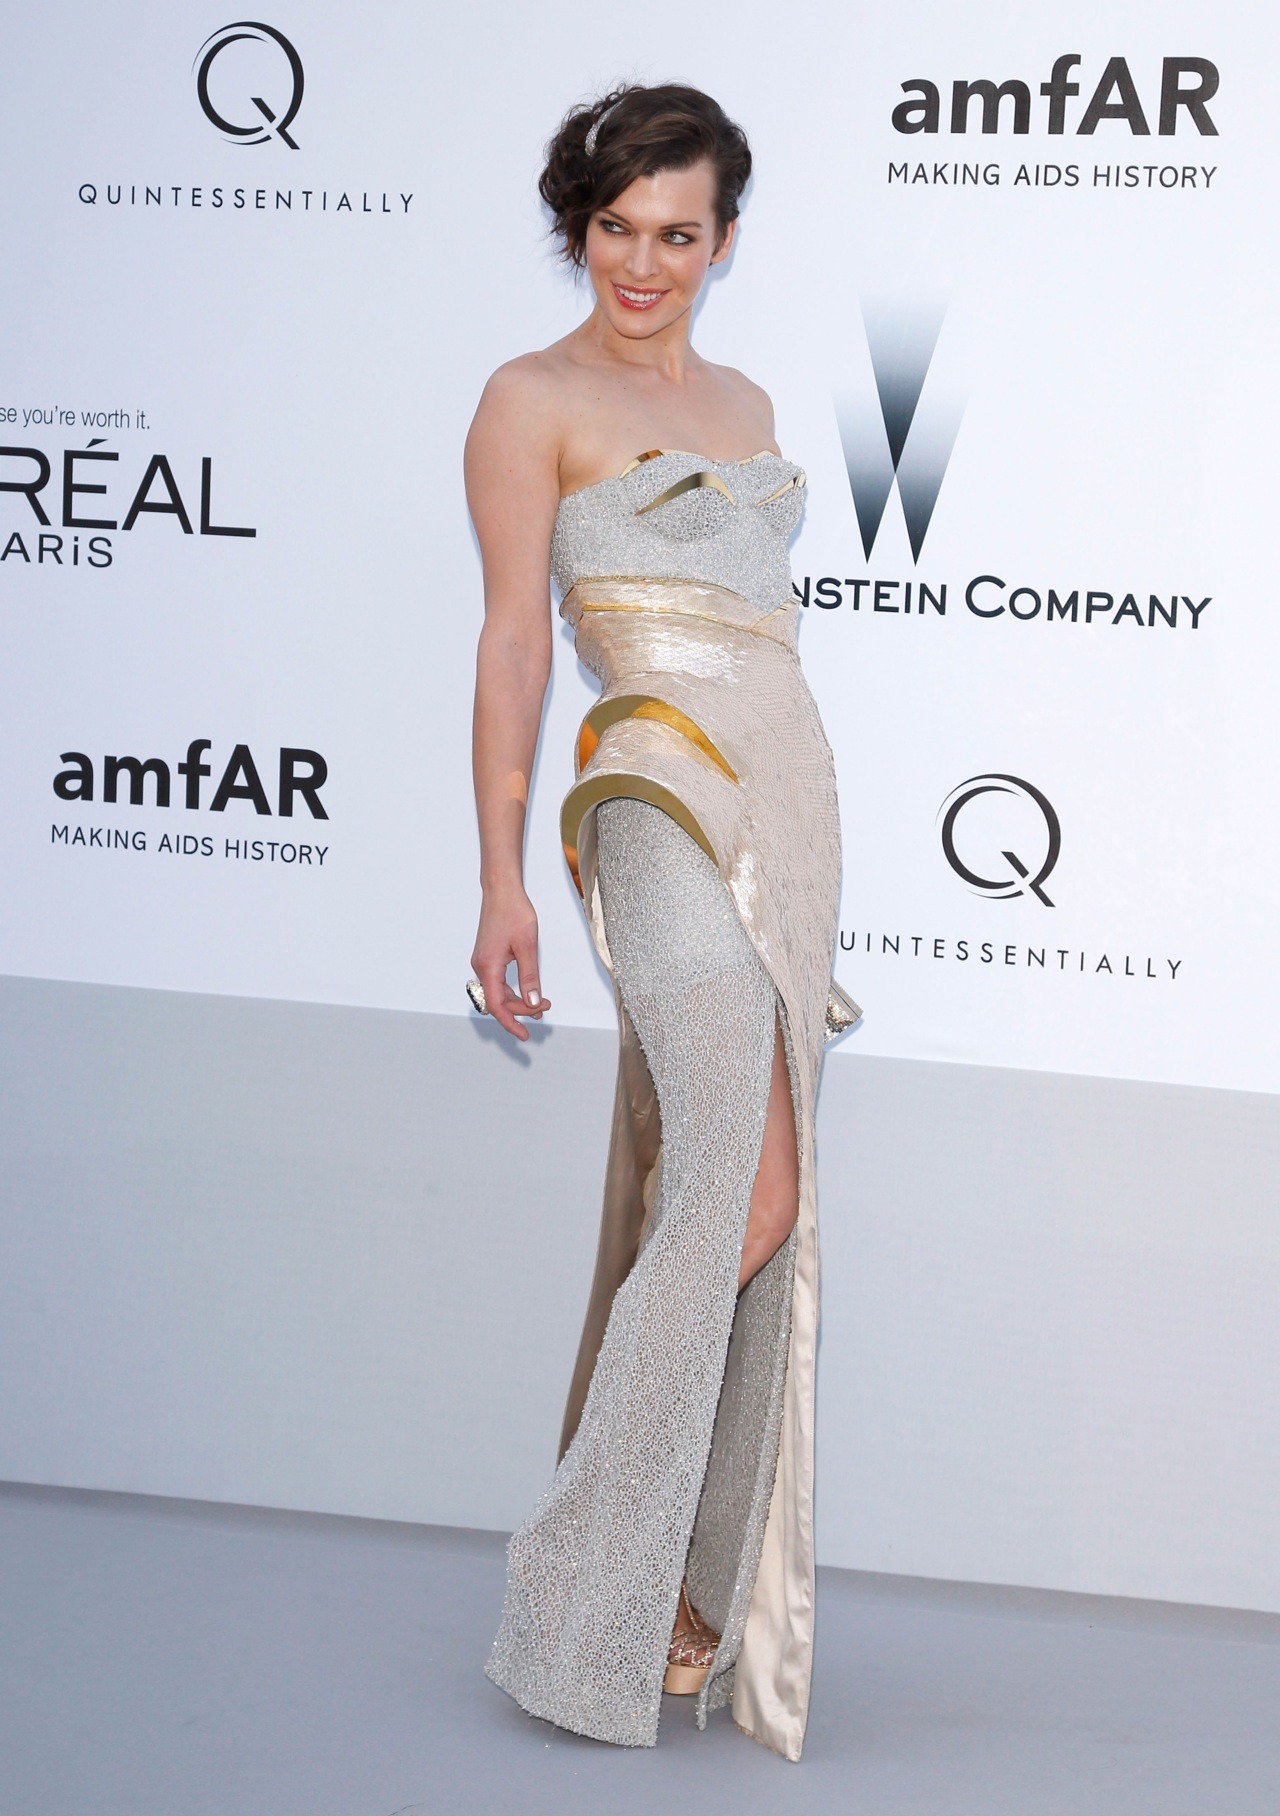 Milla Jovovich in Versace at amfAR's Cinema Against AIDS, May 24th